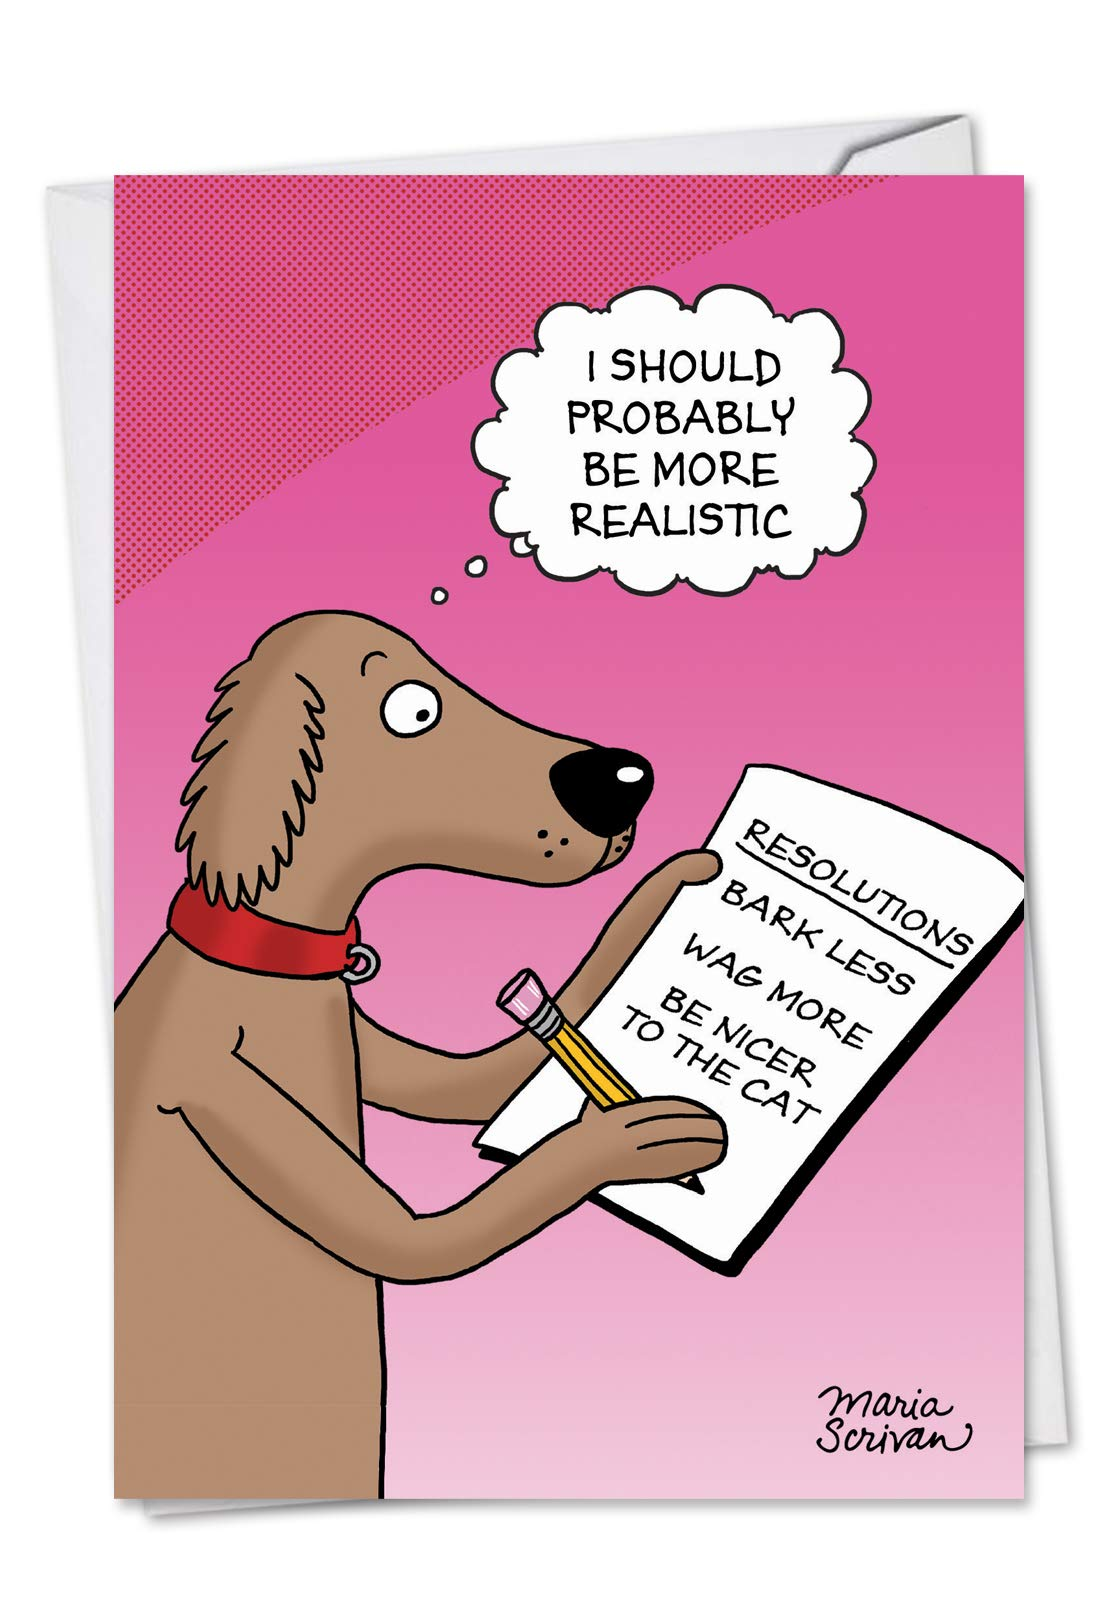 Dog Resolutions - Hilarious New Year Greeting Card with Envelope (4.63 x 6.75 Inch) - Pet Dog Resolution List, Animal New Year's Notecard for Kids, Adults - NYE Cartoon Holiday Stationery C4520NYG